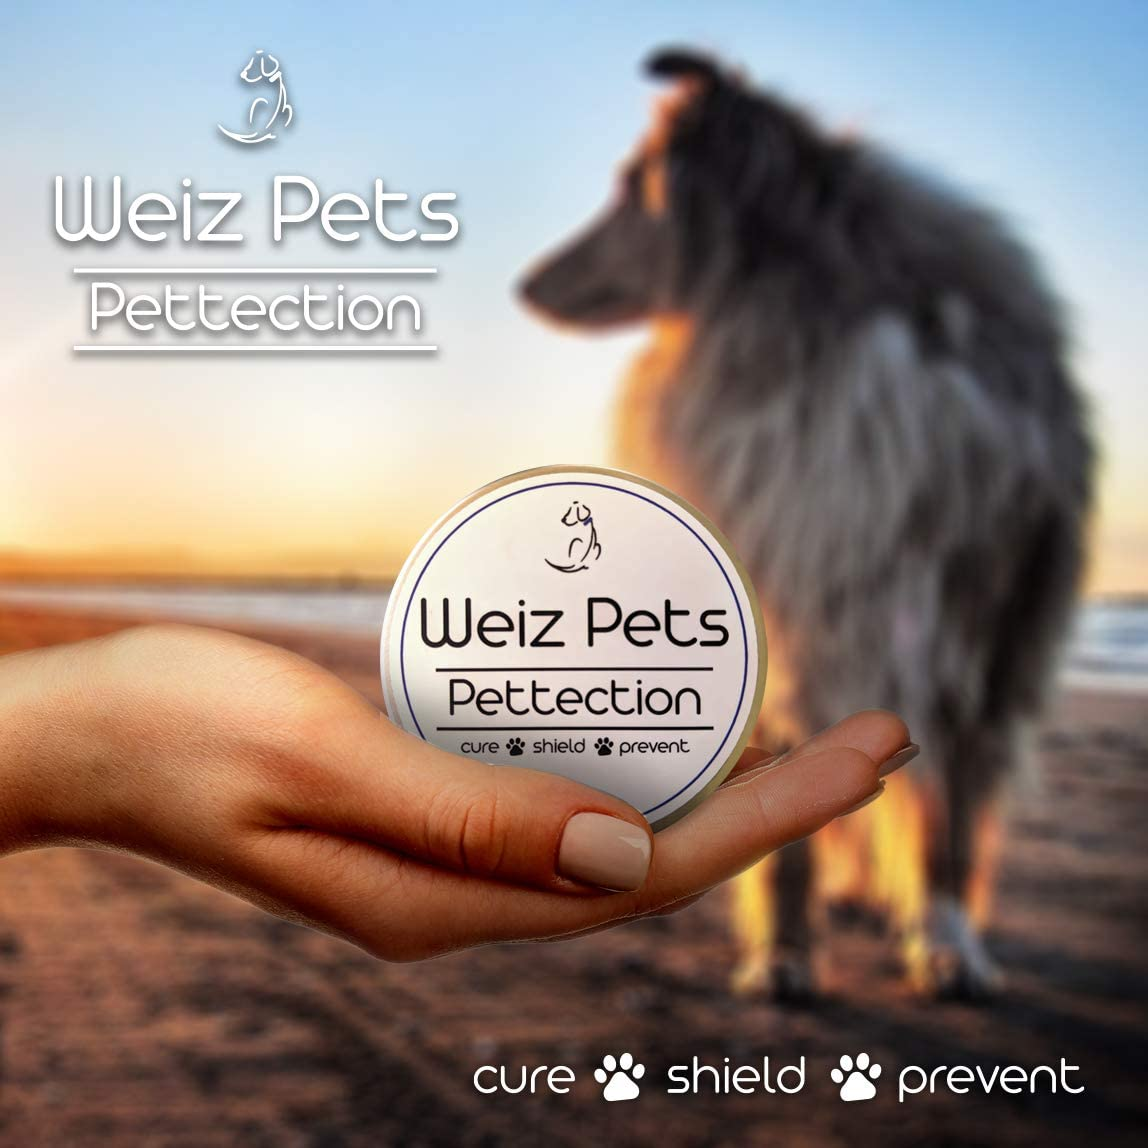 Emmel Weiz Pets Pettection Dog Paw Balm - Unscented Mess Free Natural and Organic Puppy, Dog, Kitten and Cat Pad Butter and Snout and Nose Soother